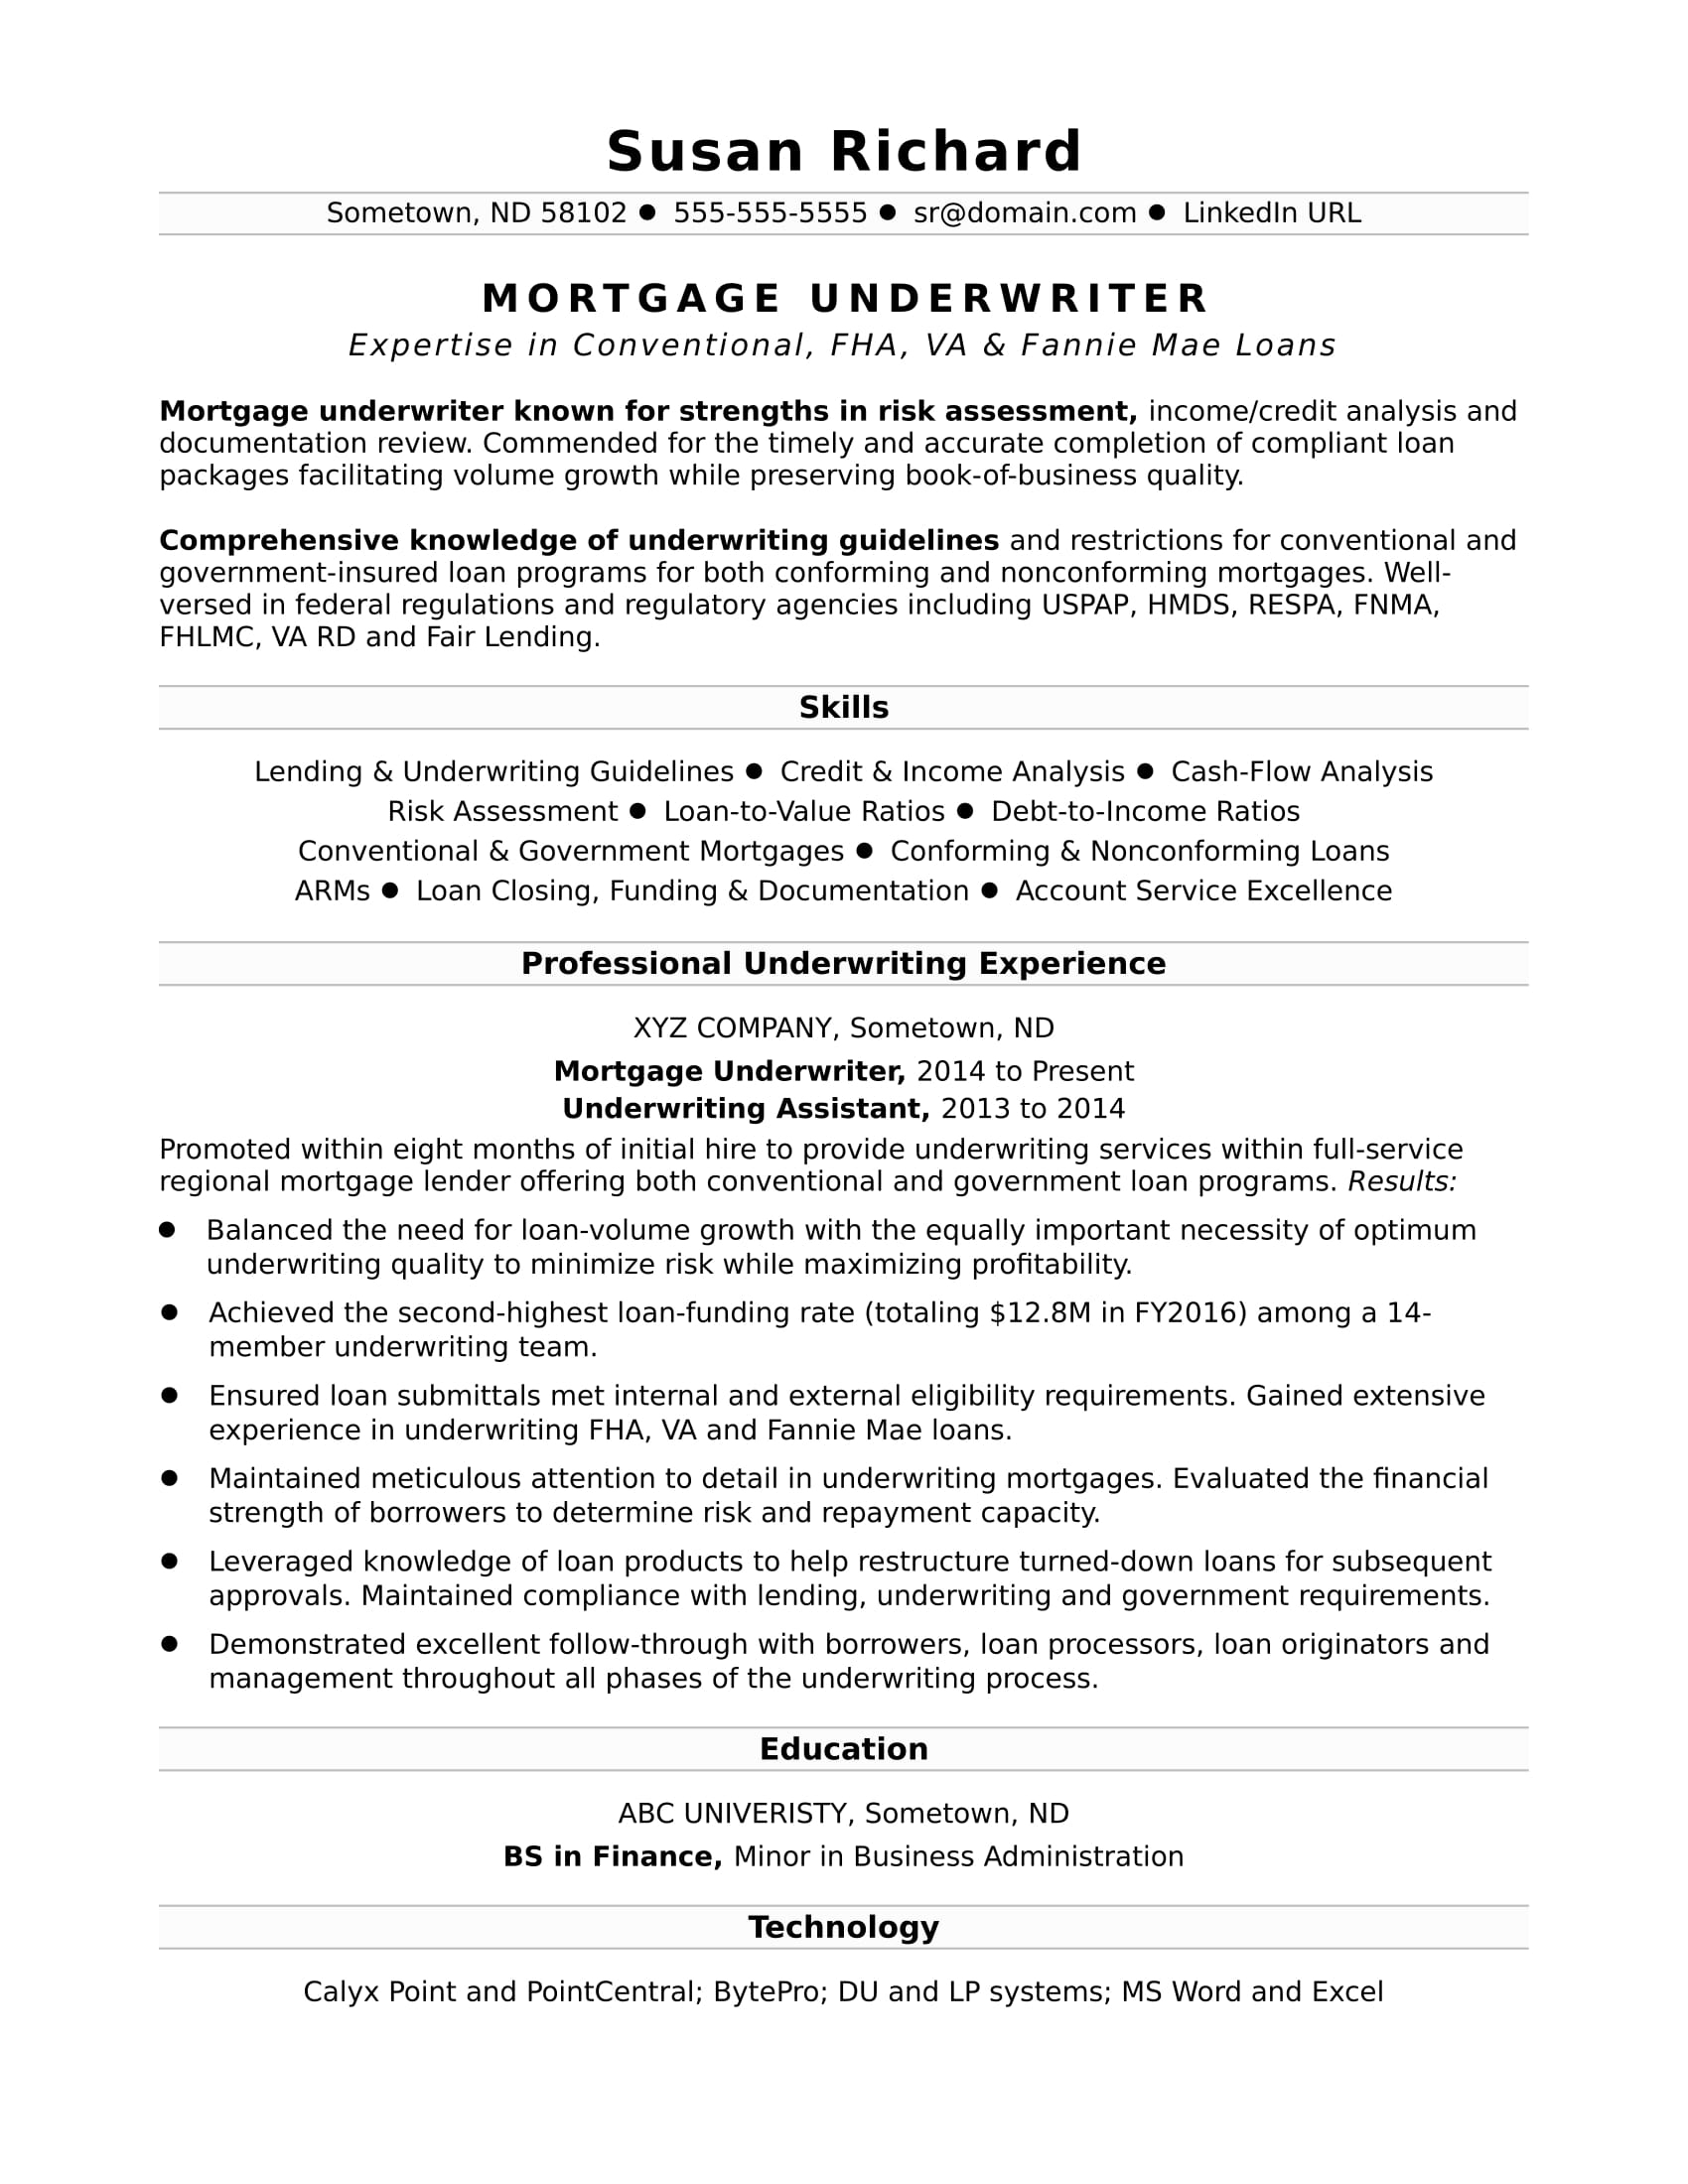 mortgage protection letter template example-Sample Resume for a Mortgage Underwriter 16-e